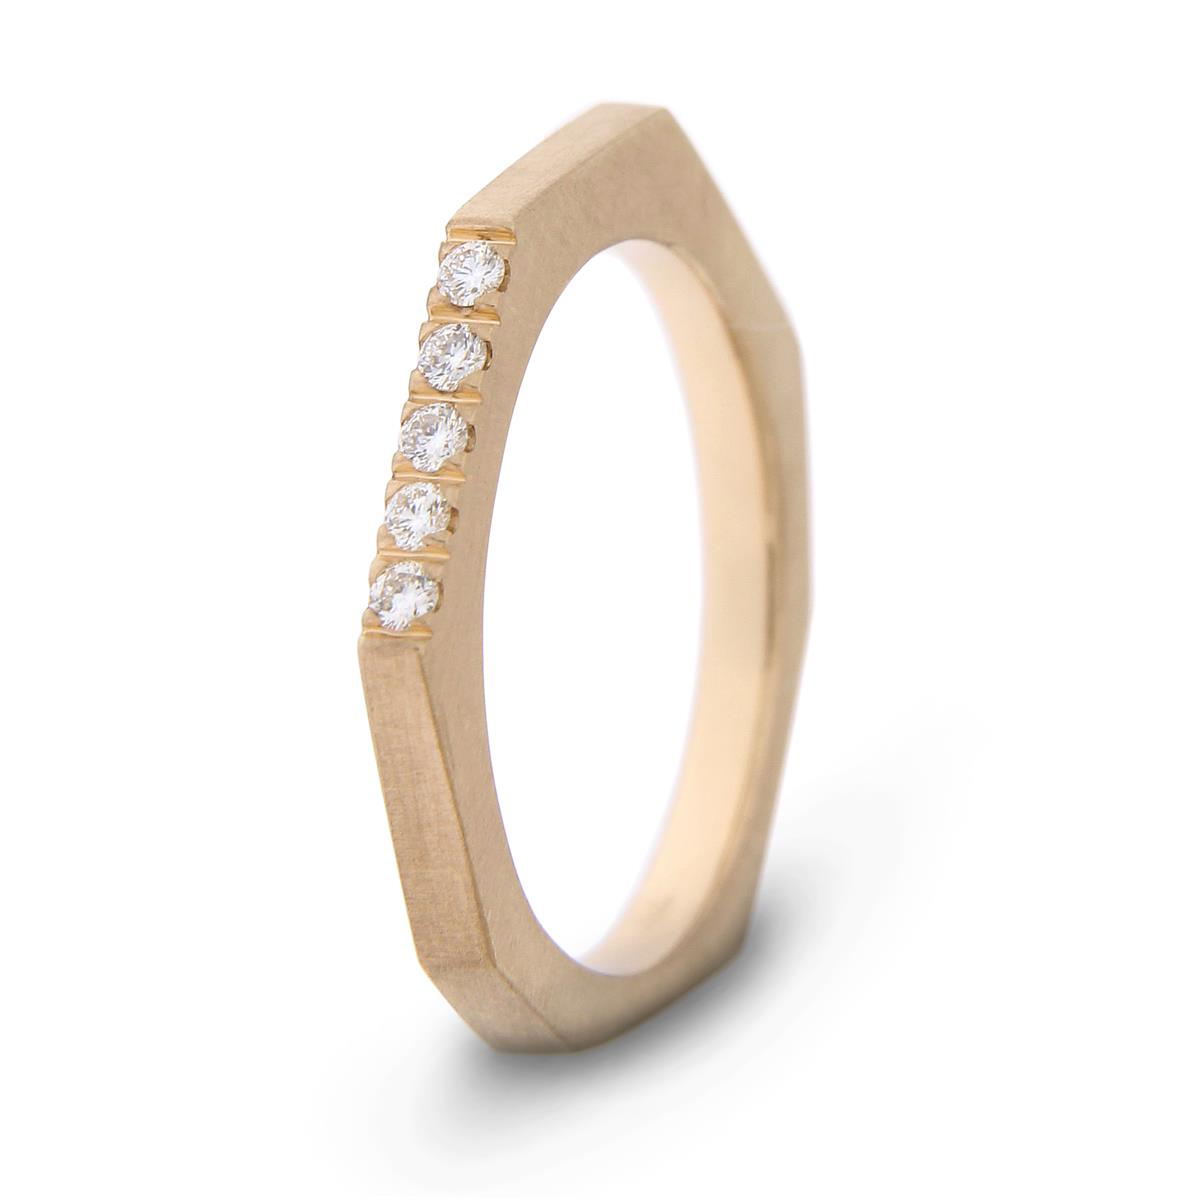 Katie g. Jewellery - Ringe mit Diamanten - Cutting Edge Ring XS - mattes 14kt. Roségold - mit 4 Brillanten